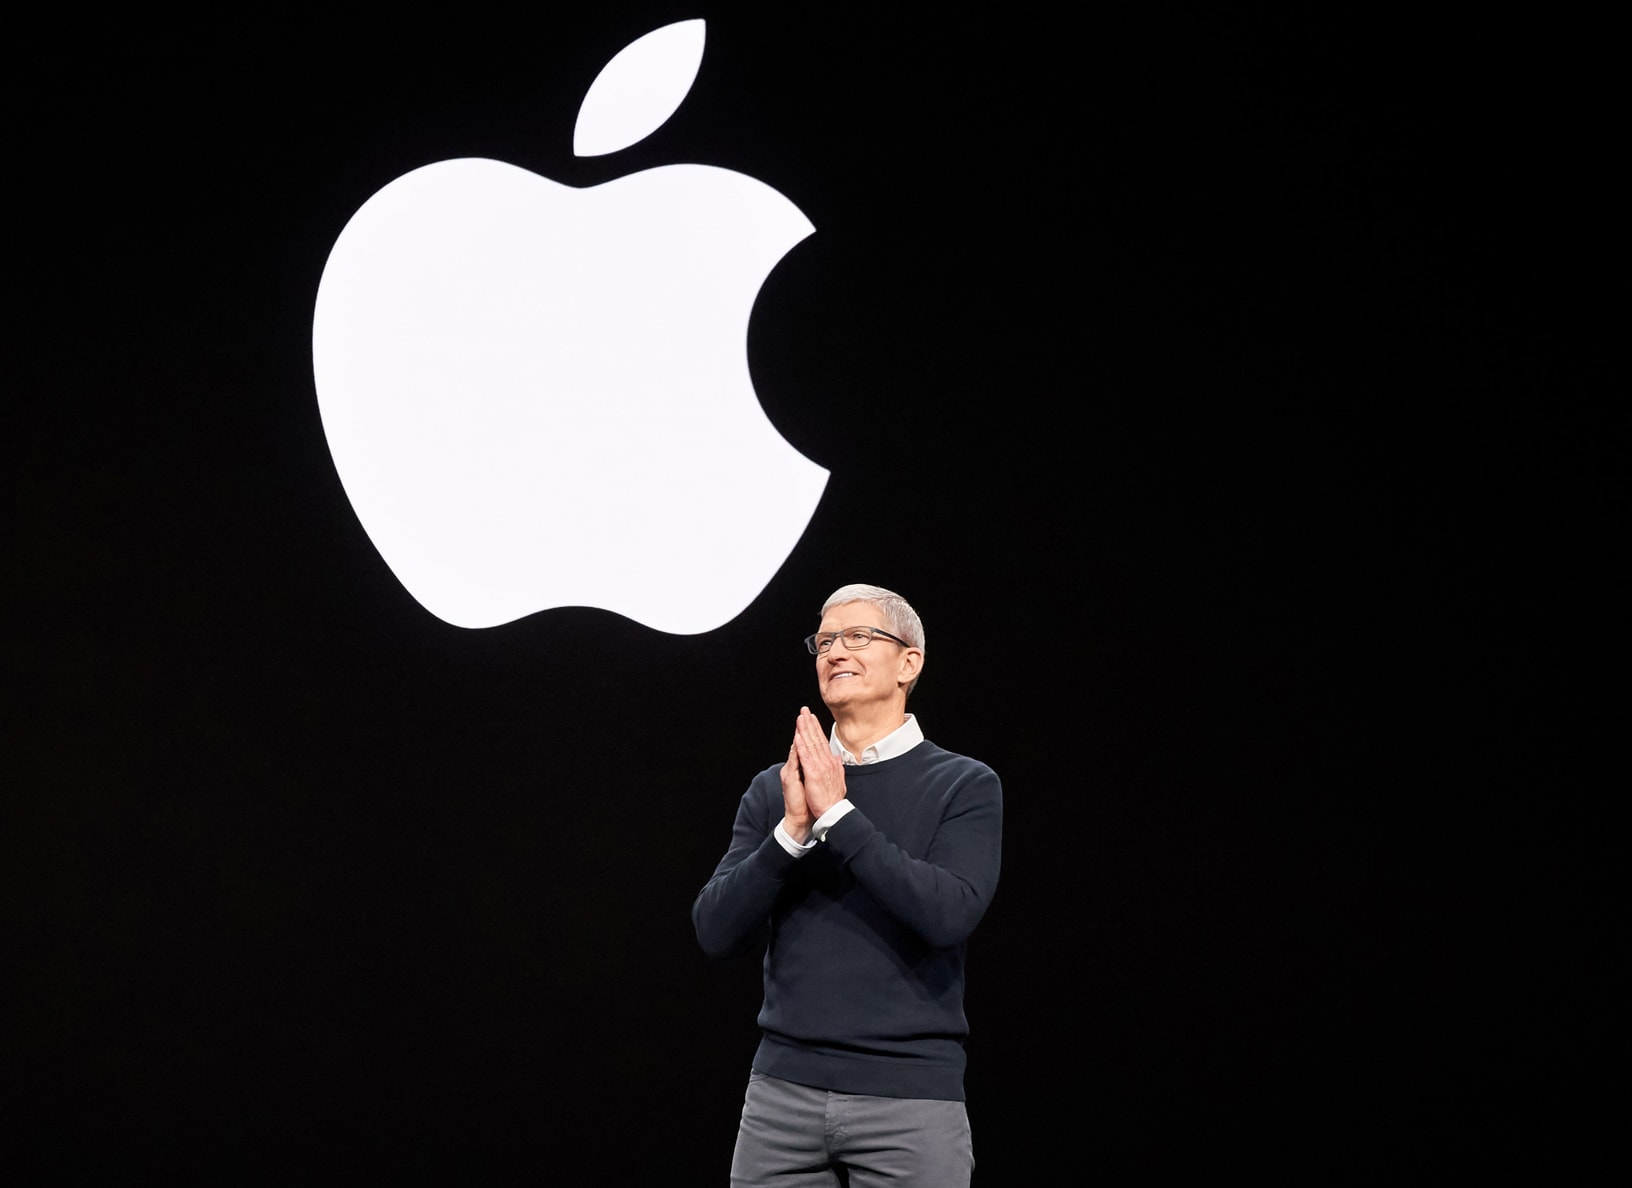 Tim Cook is keeping quiet about Apple TV+ subscriber numbers for now.